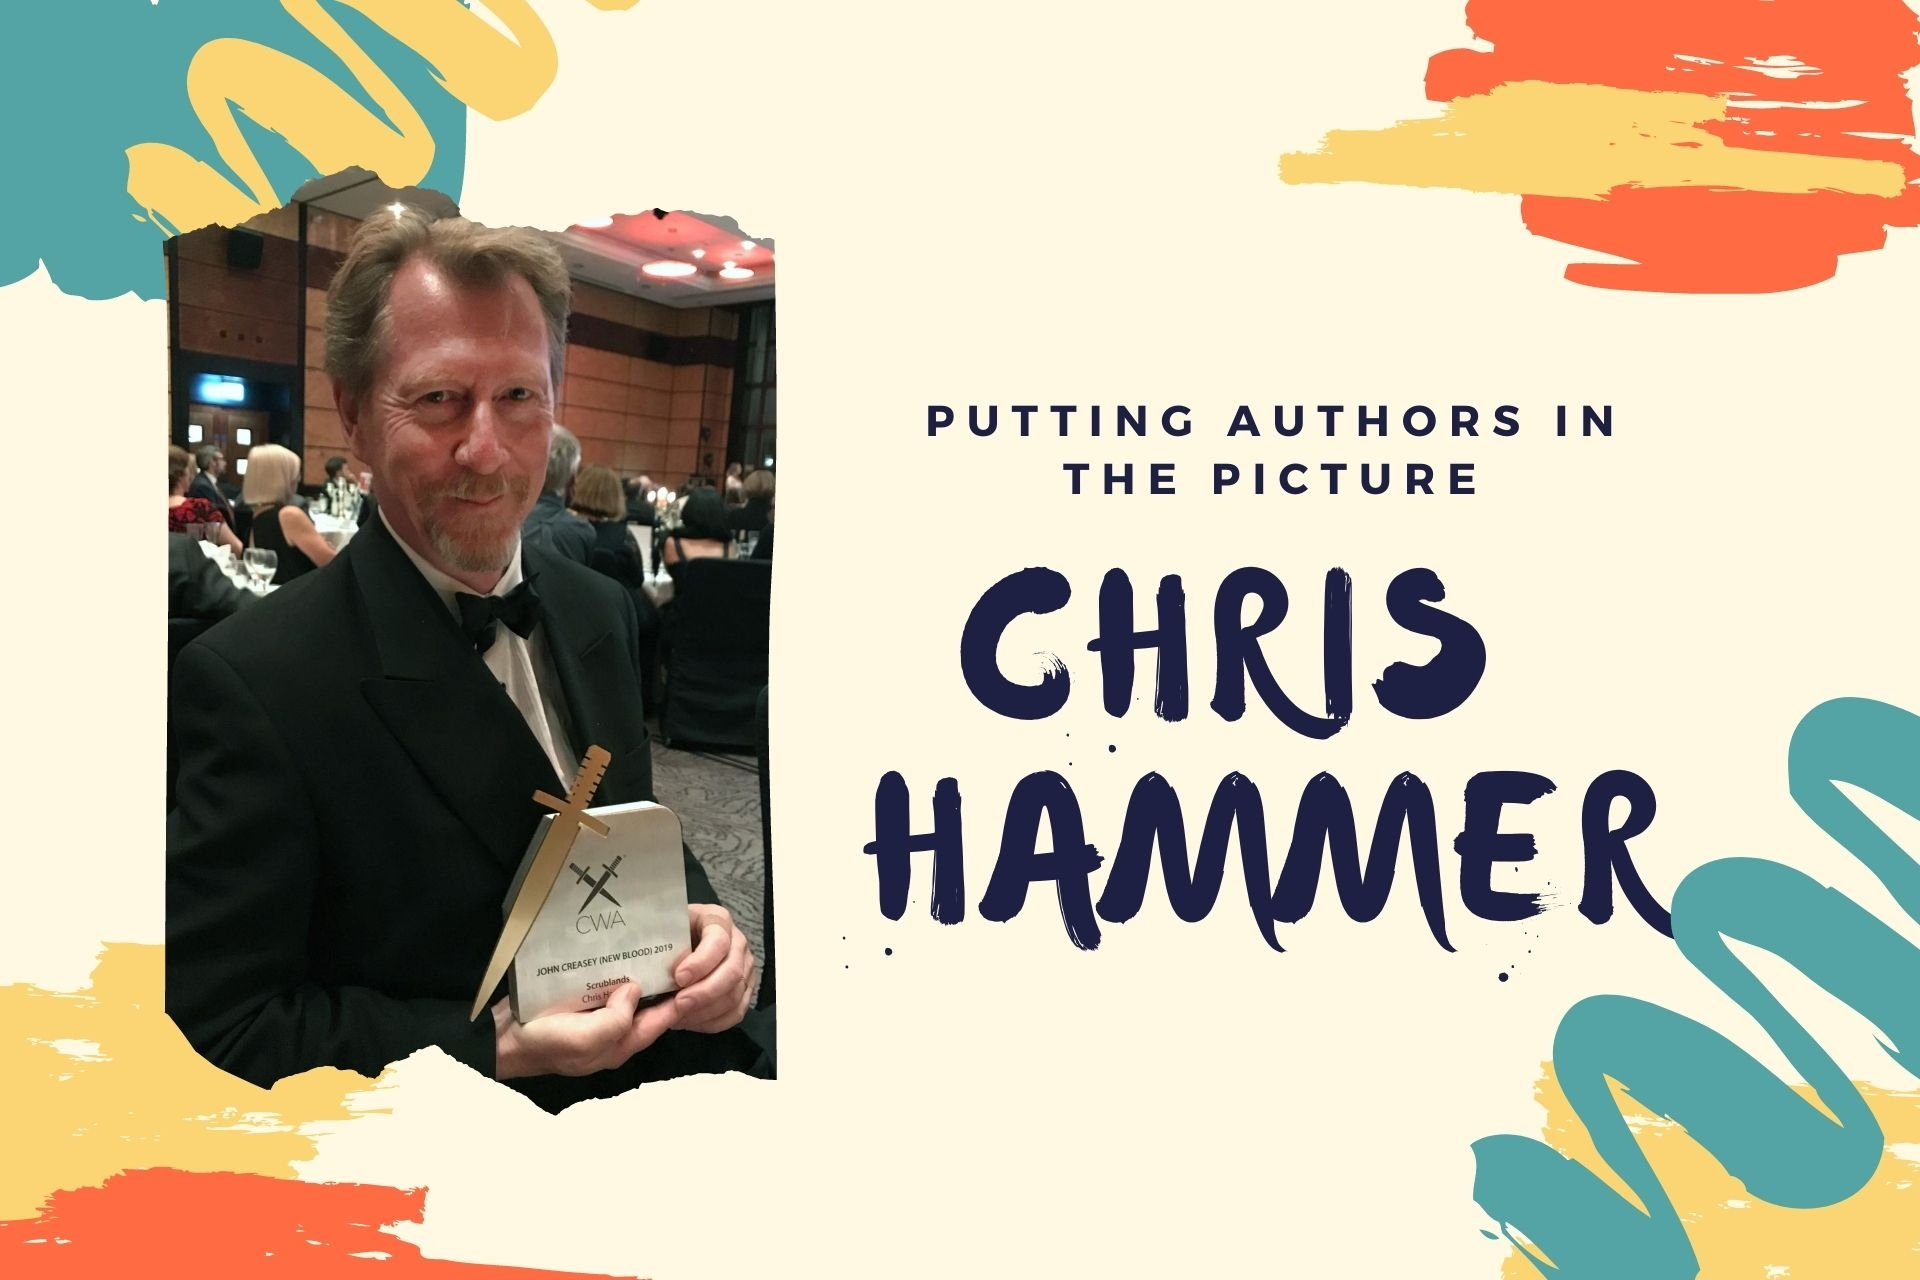 Putting Authors in the Picture #24: Chris Hammer